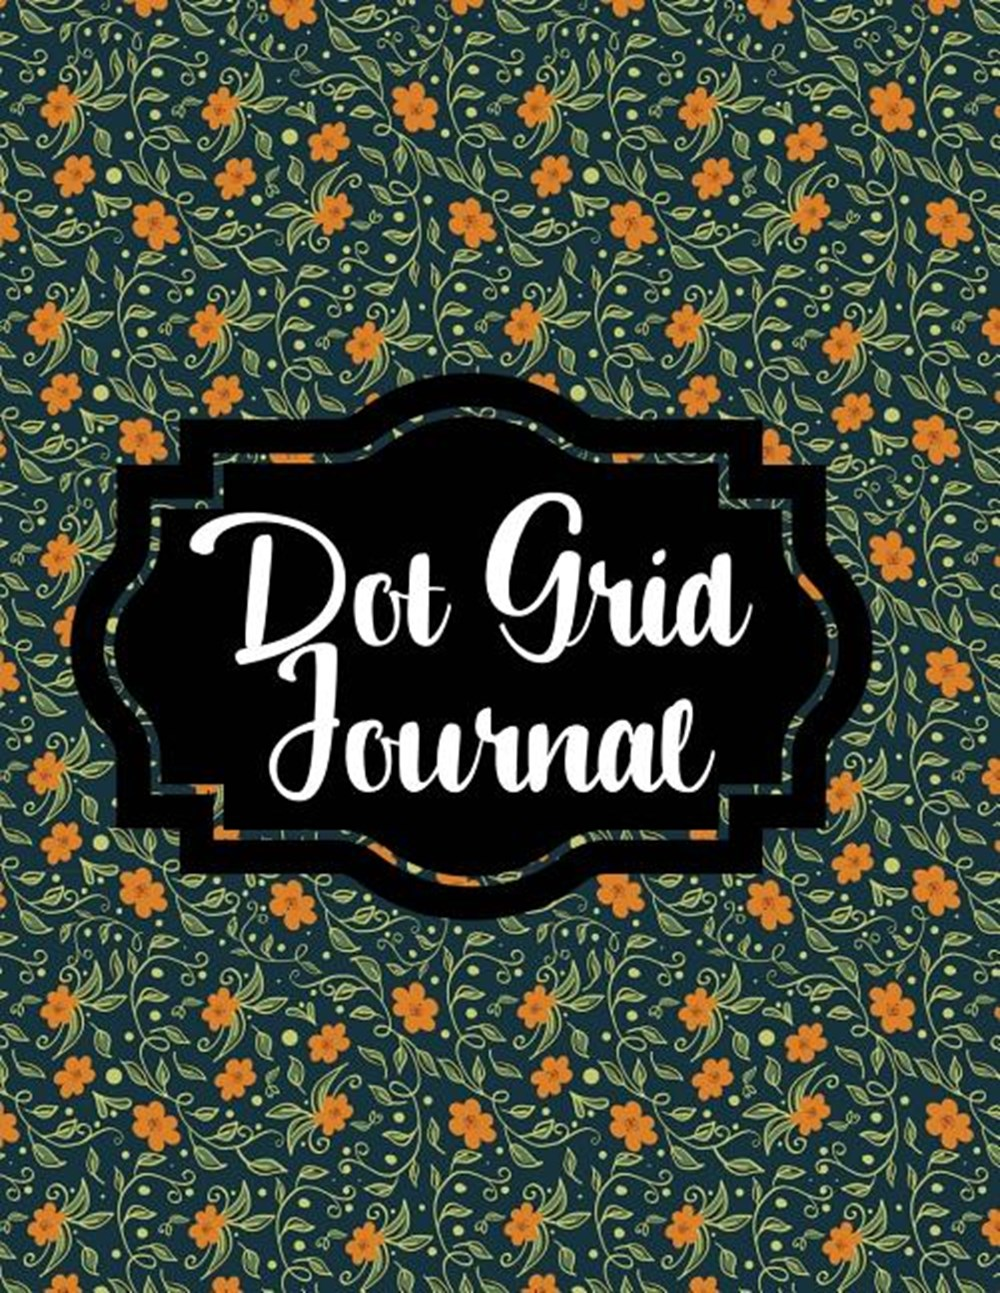 Dot Grid Journal Floral Print, 200 Pages, Dot Grid, 8.5x11, Matte